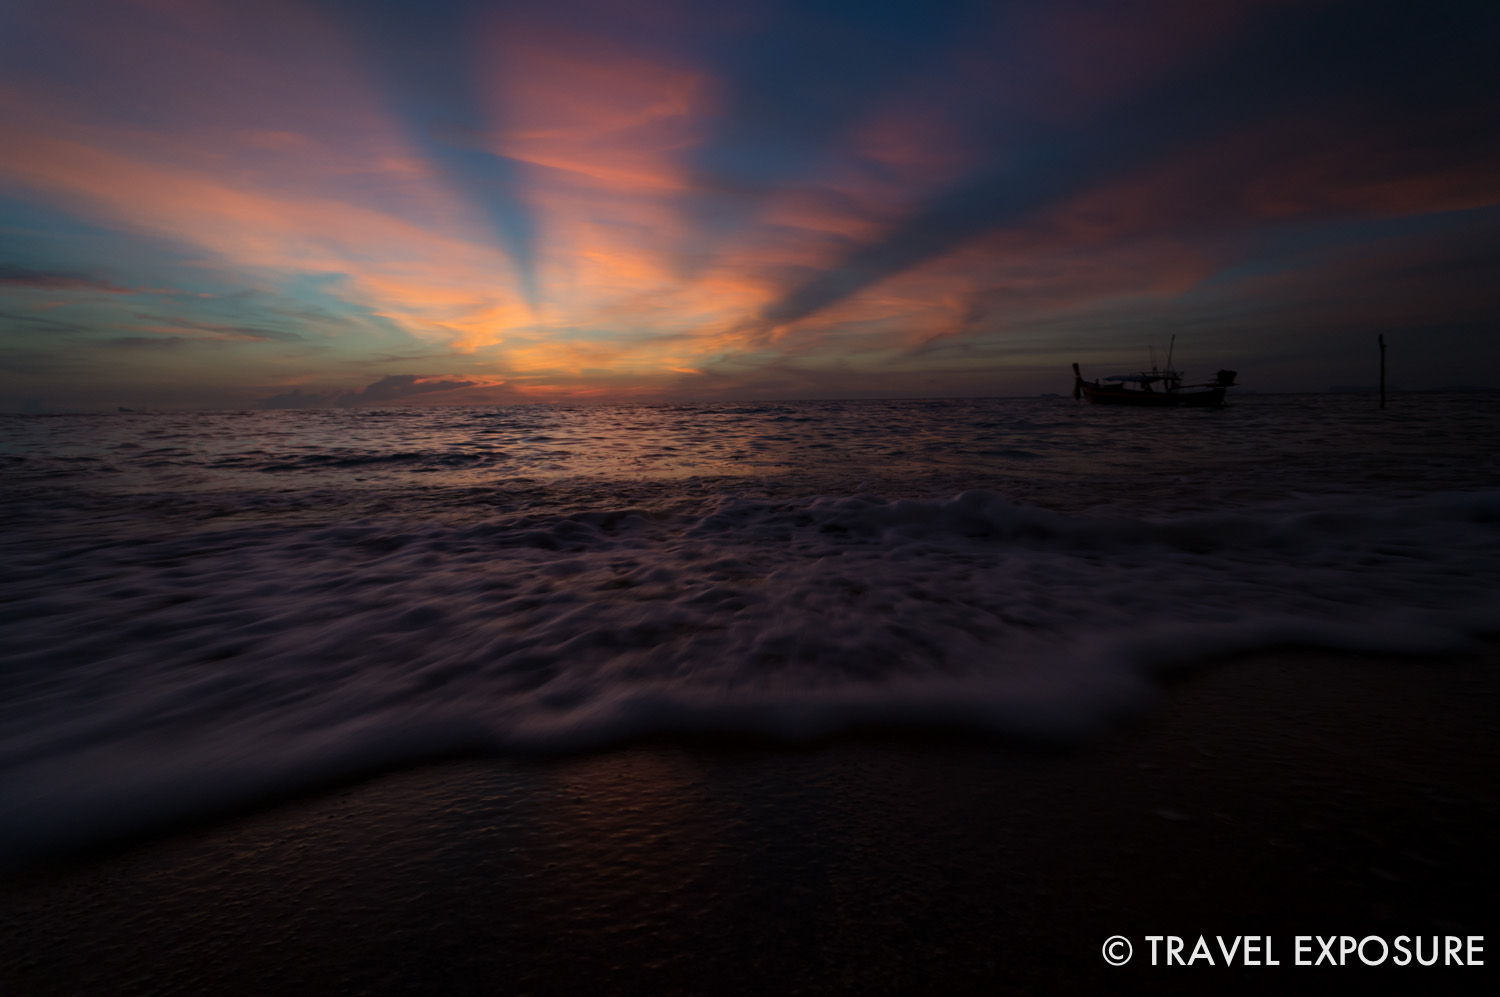 WEEK OF NOVEMBER 24 The sun sets into the Andaman Sea in Koh Lanta, Thailand.